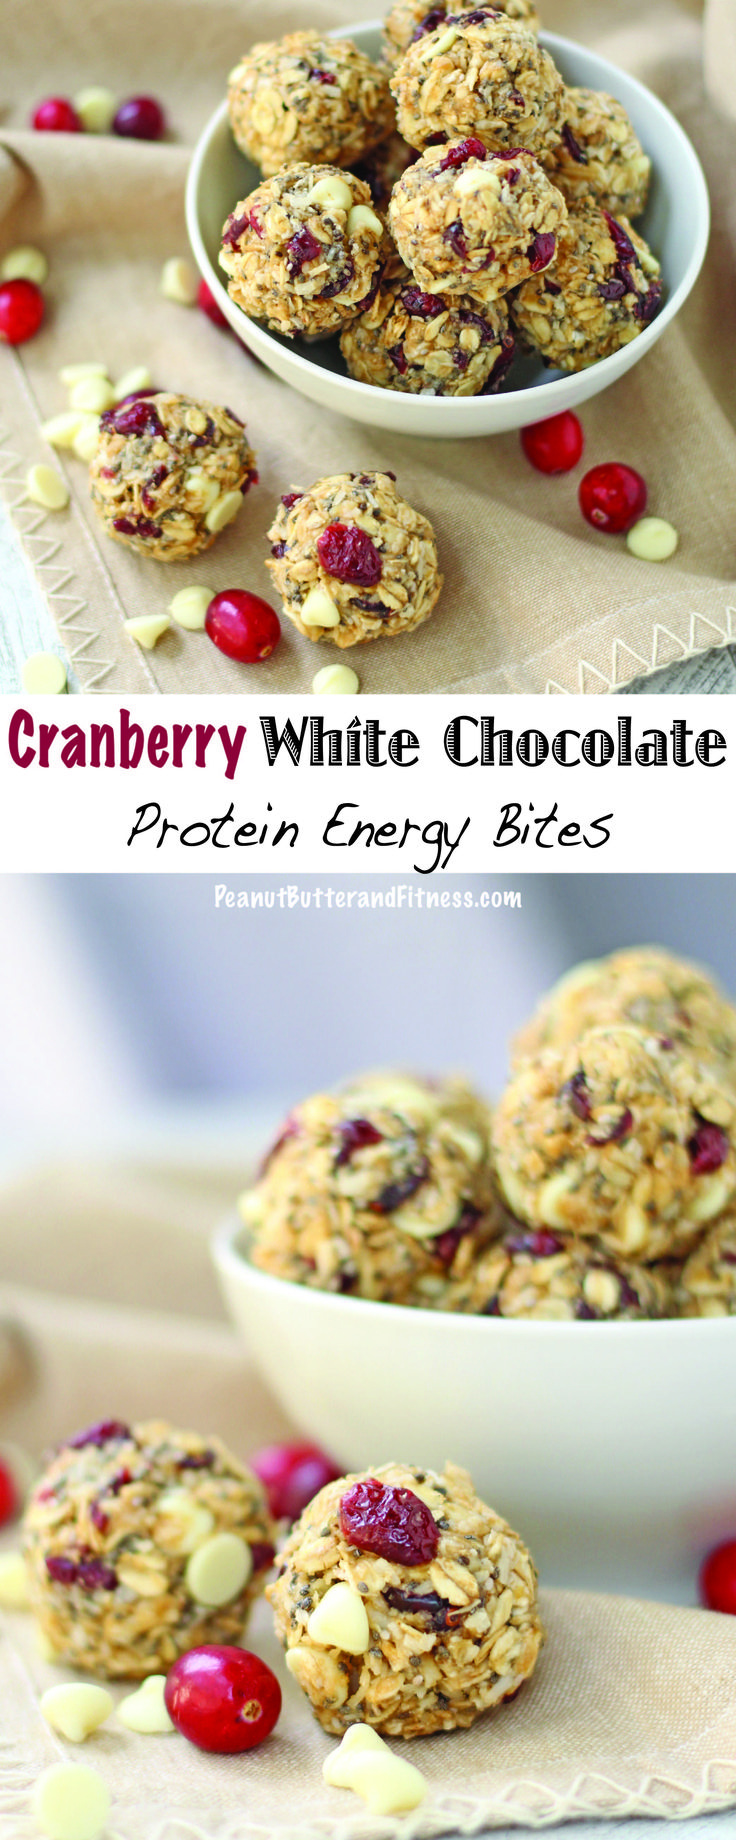 Cranberry White Chocolate Protein Energy Bites - a great pick me up that won't weigh you down! Perfect for your weekly snack prep.  Cranberry White Chocolate Protein Energy Bites Yield: 16 servings • Serving Size: 1 bite • Calories per serving: 117 • Fat: 6 g • Protein: 4 g • Carbs: 13 g • Fiber: 3 g • Sugar: 5 g • Sodium: 67 mg • Cholesterol: 0 mg